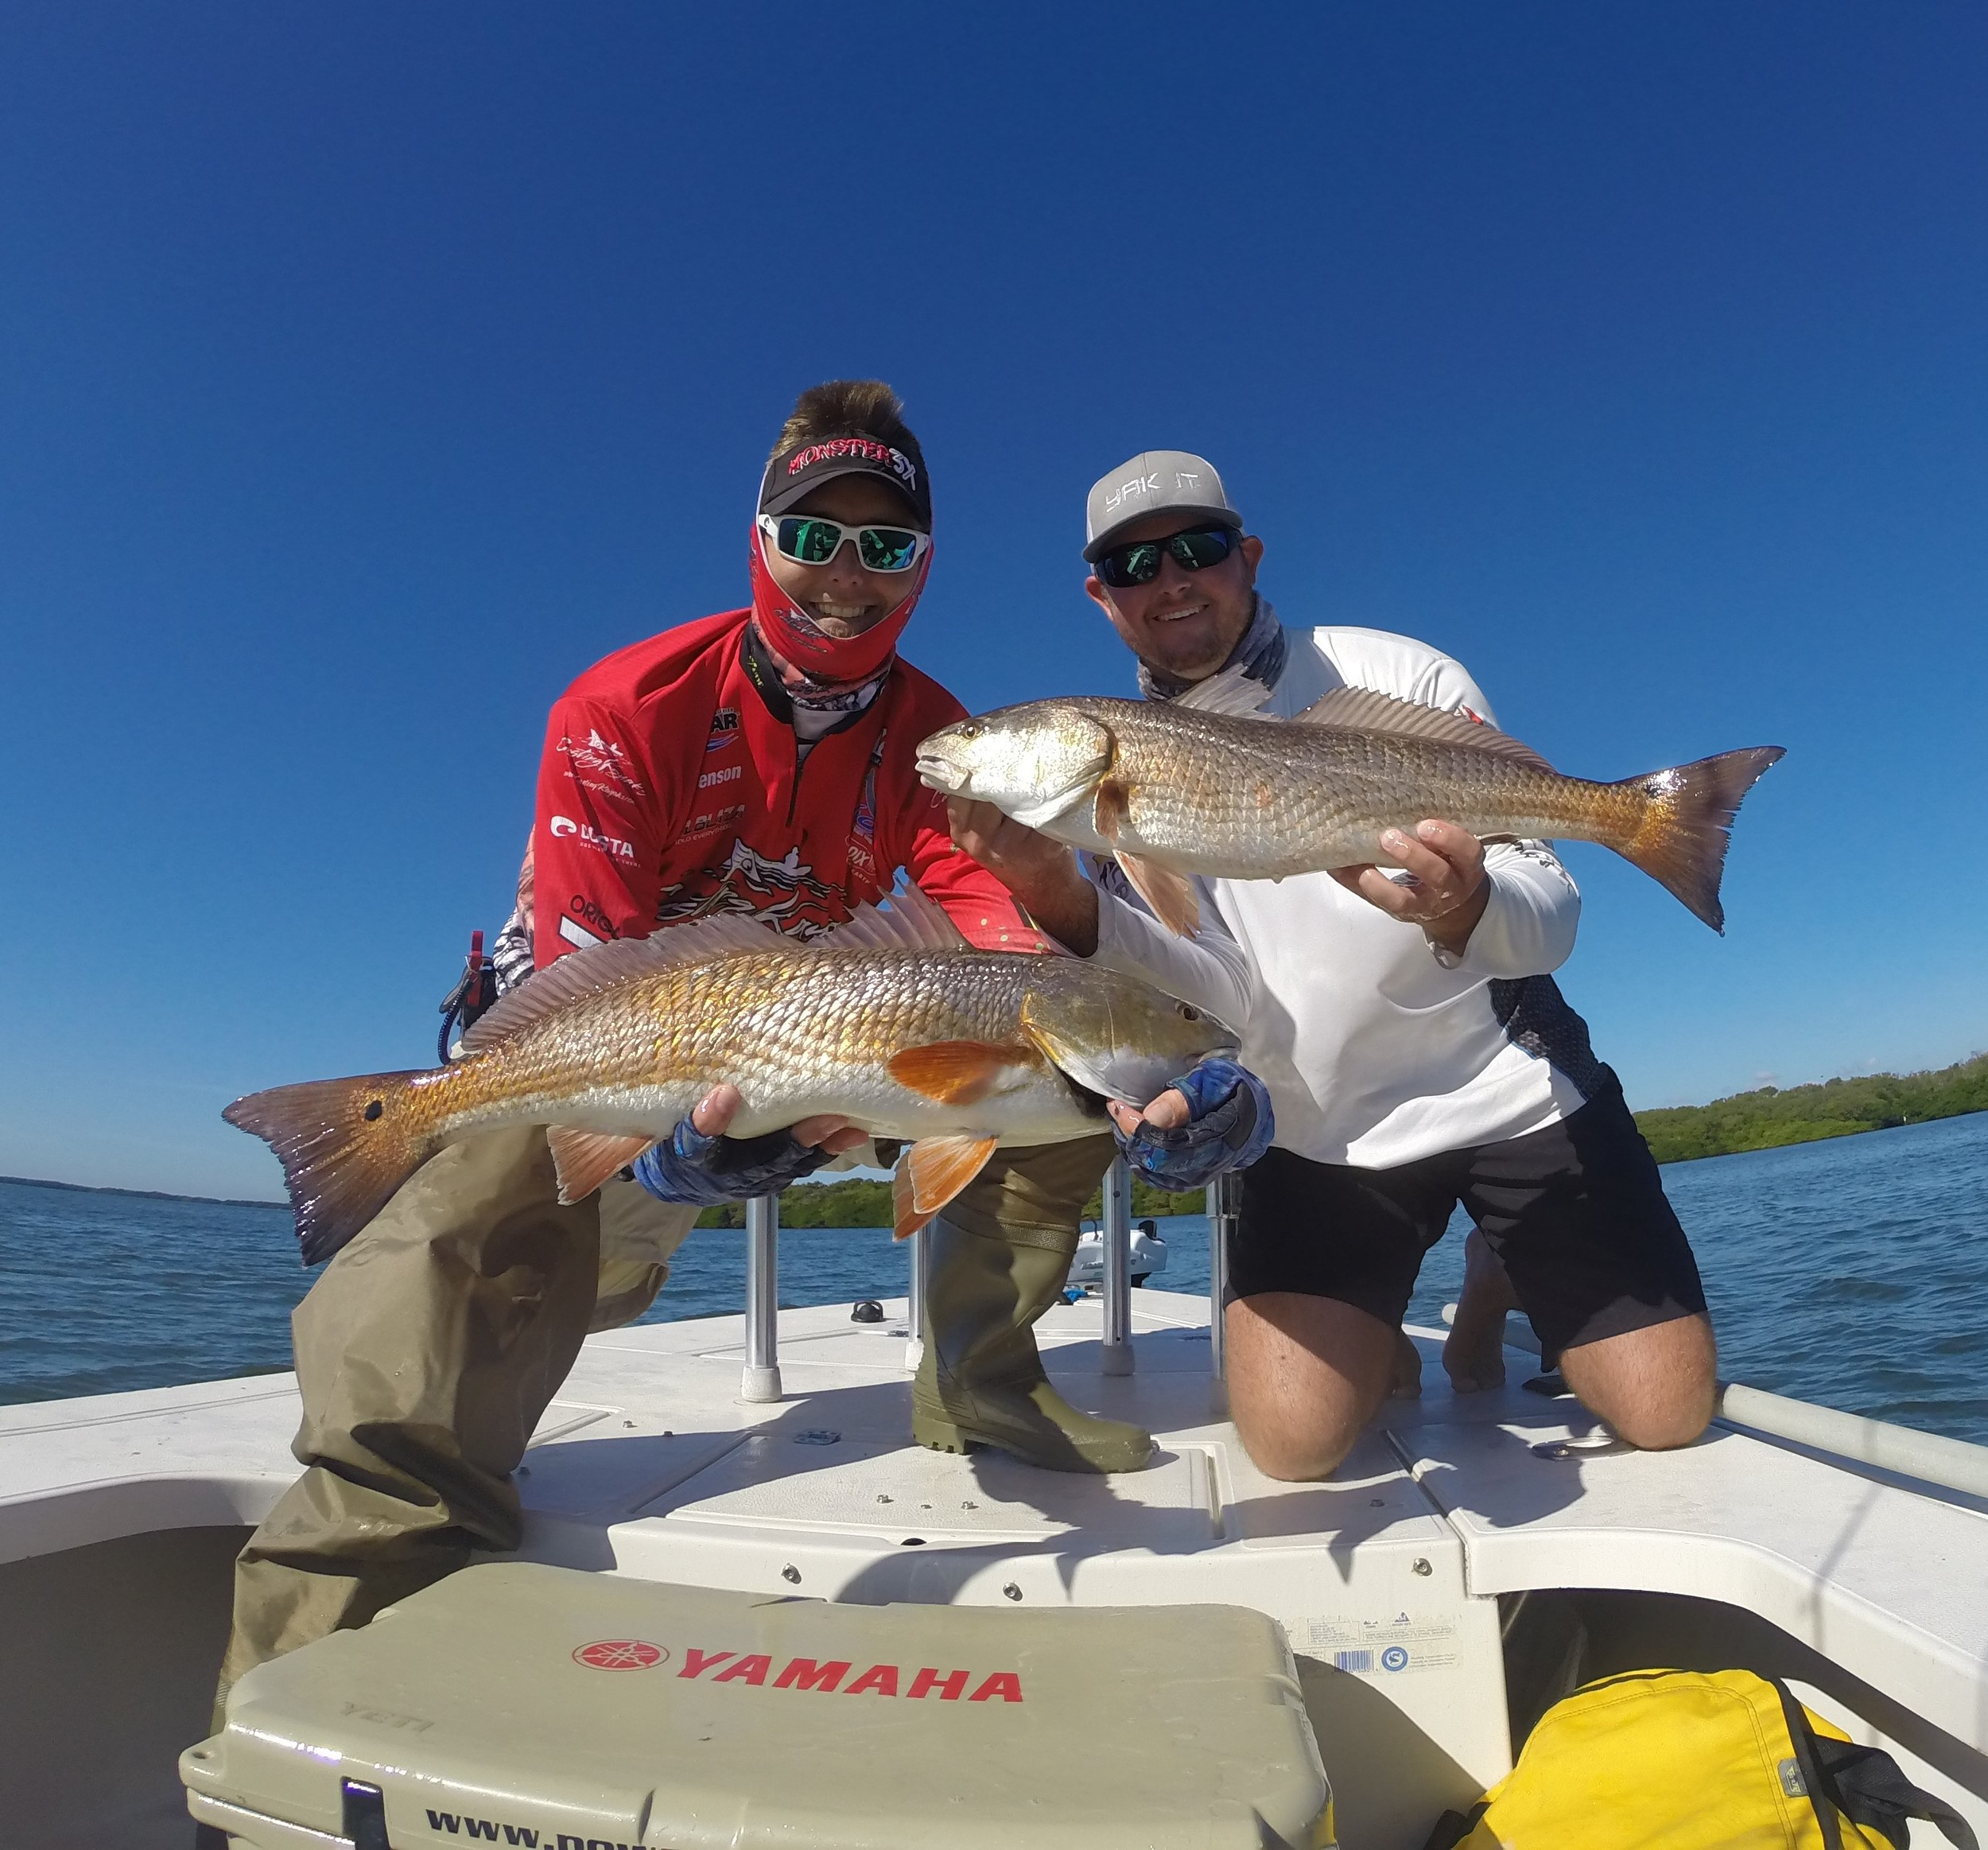 1st Place & Biggest fish with these two fish on stop #2 Tampa Bay Redfish Tour! Took 5th Place in the overall series 2016